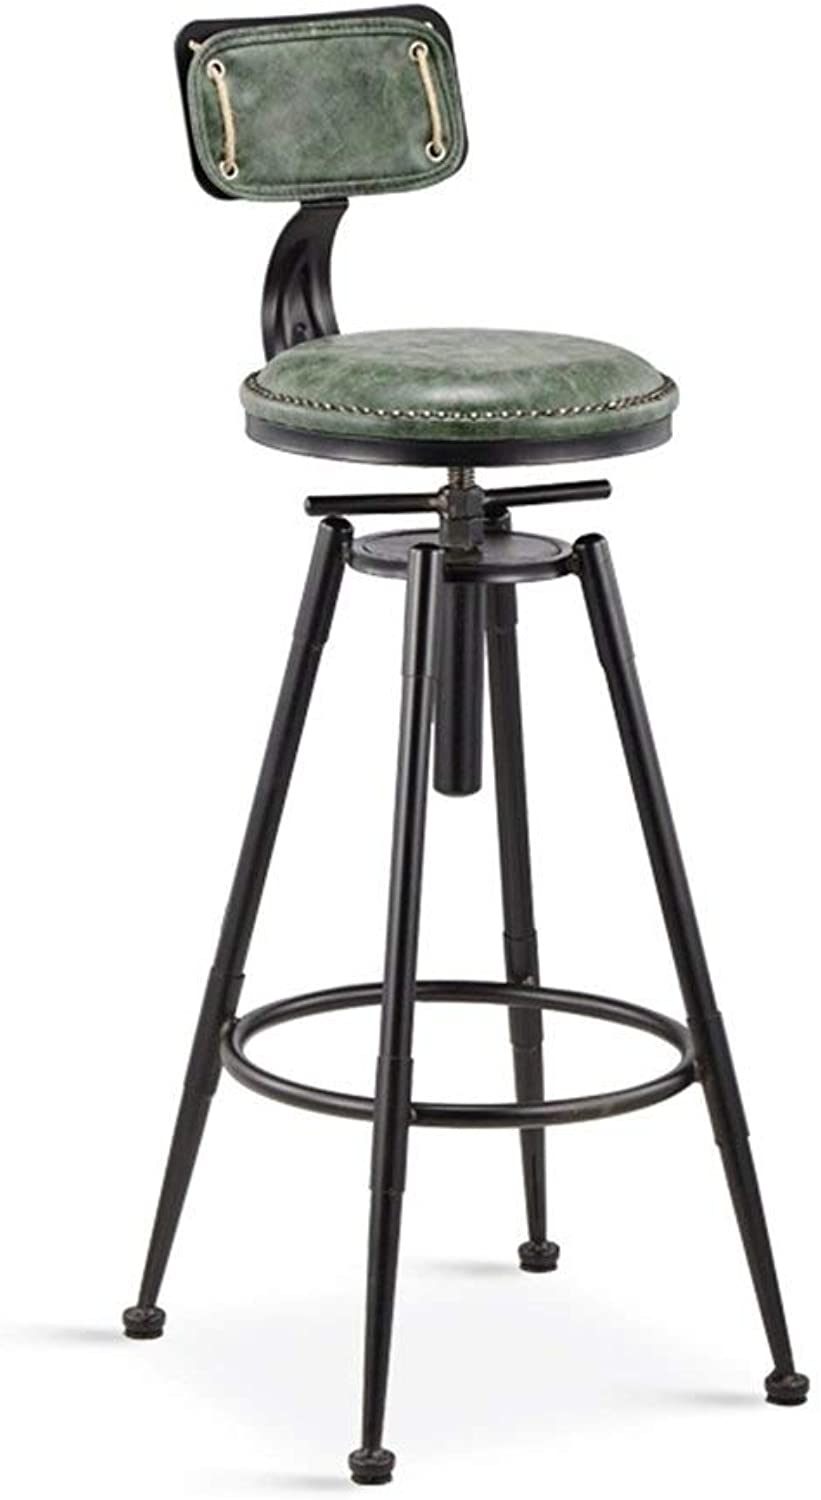 Metal Retro Bar Stool Coffee Chair Lift Dining Chair High Stool Makeup Bench Wrought Iron Chair LEBAO (color    2)